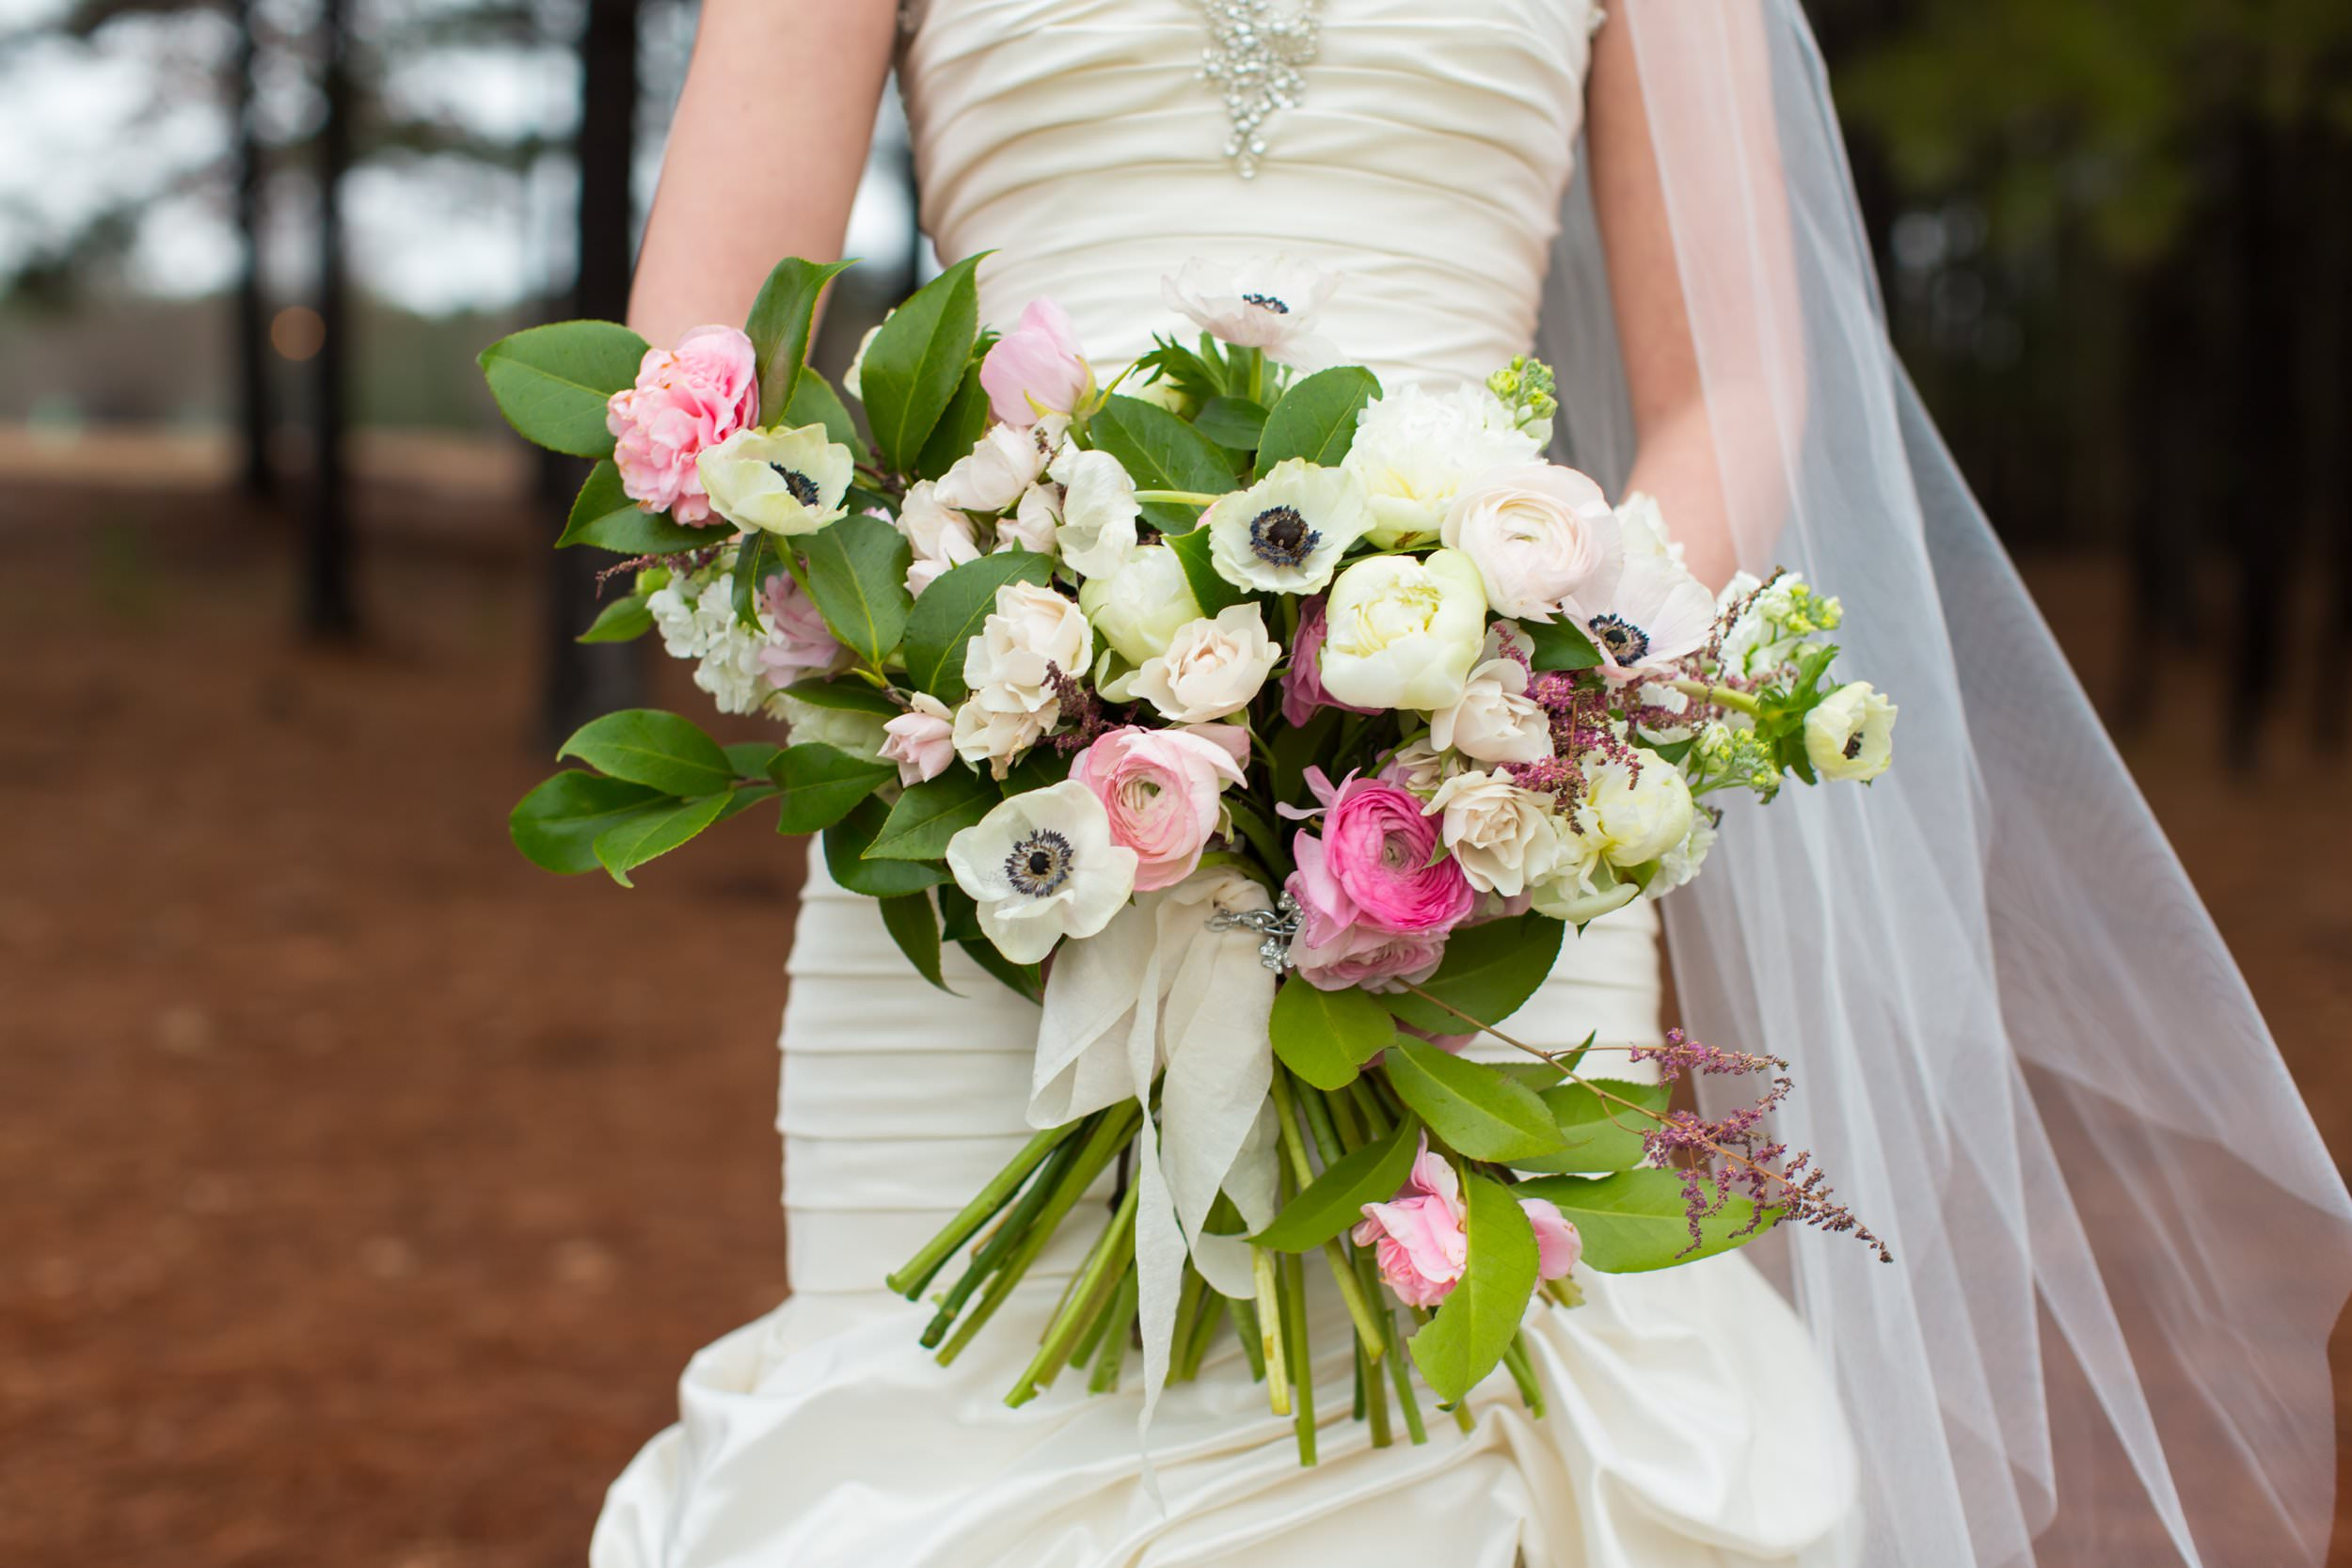 Danielle's asymmetrical bridal bouquet by  Atlanta florist Forage and Fleur  was oh so lovely. I especially love the anemones!  Click here  to view more photos from Steven and Danielle's  Eagles Brooke Country Club wedding .